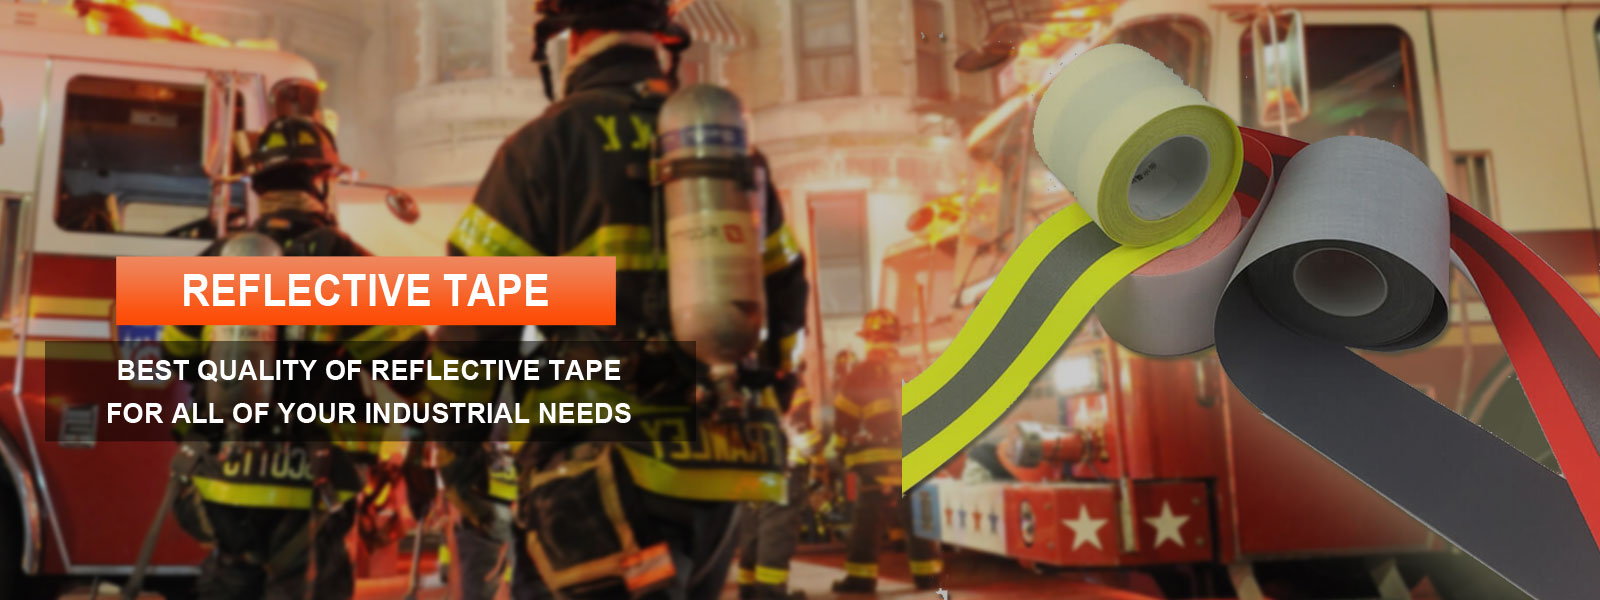 Reflective Tape Manufacturers in Singapore